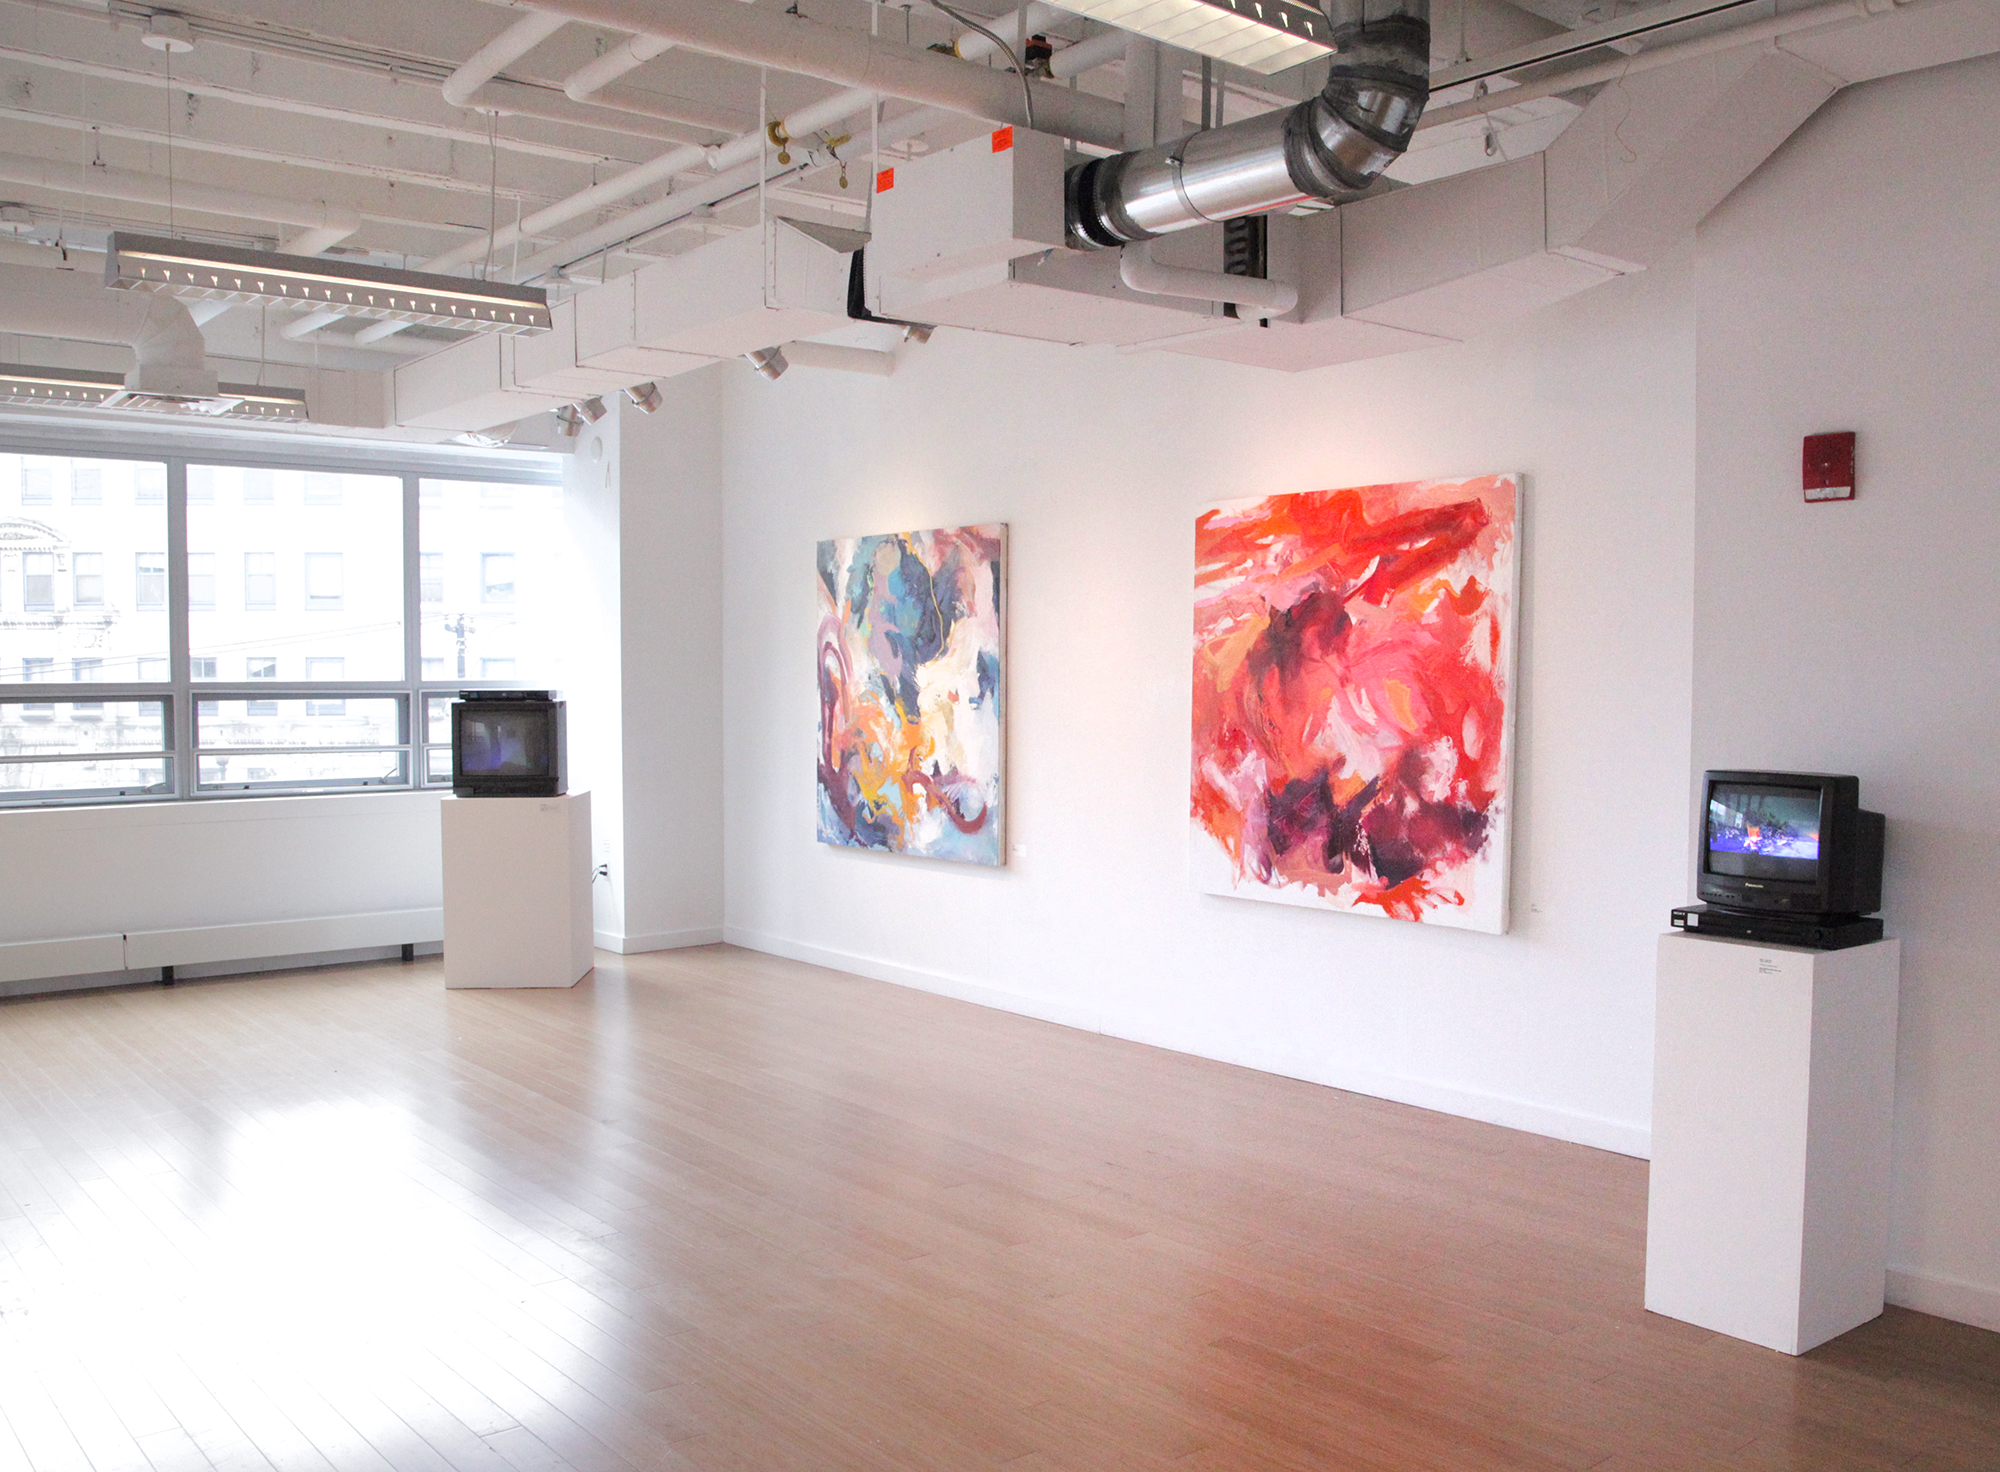 Featured Carly Sheehan paintings and TVs displaying Pat O'Neil video art. / Geena Matuson's (@geenamatuson) TransFIREmation Gallery Show & Installation in the MassArt Student Life Gallery in Boston, MA, US.